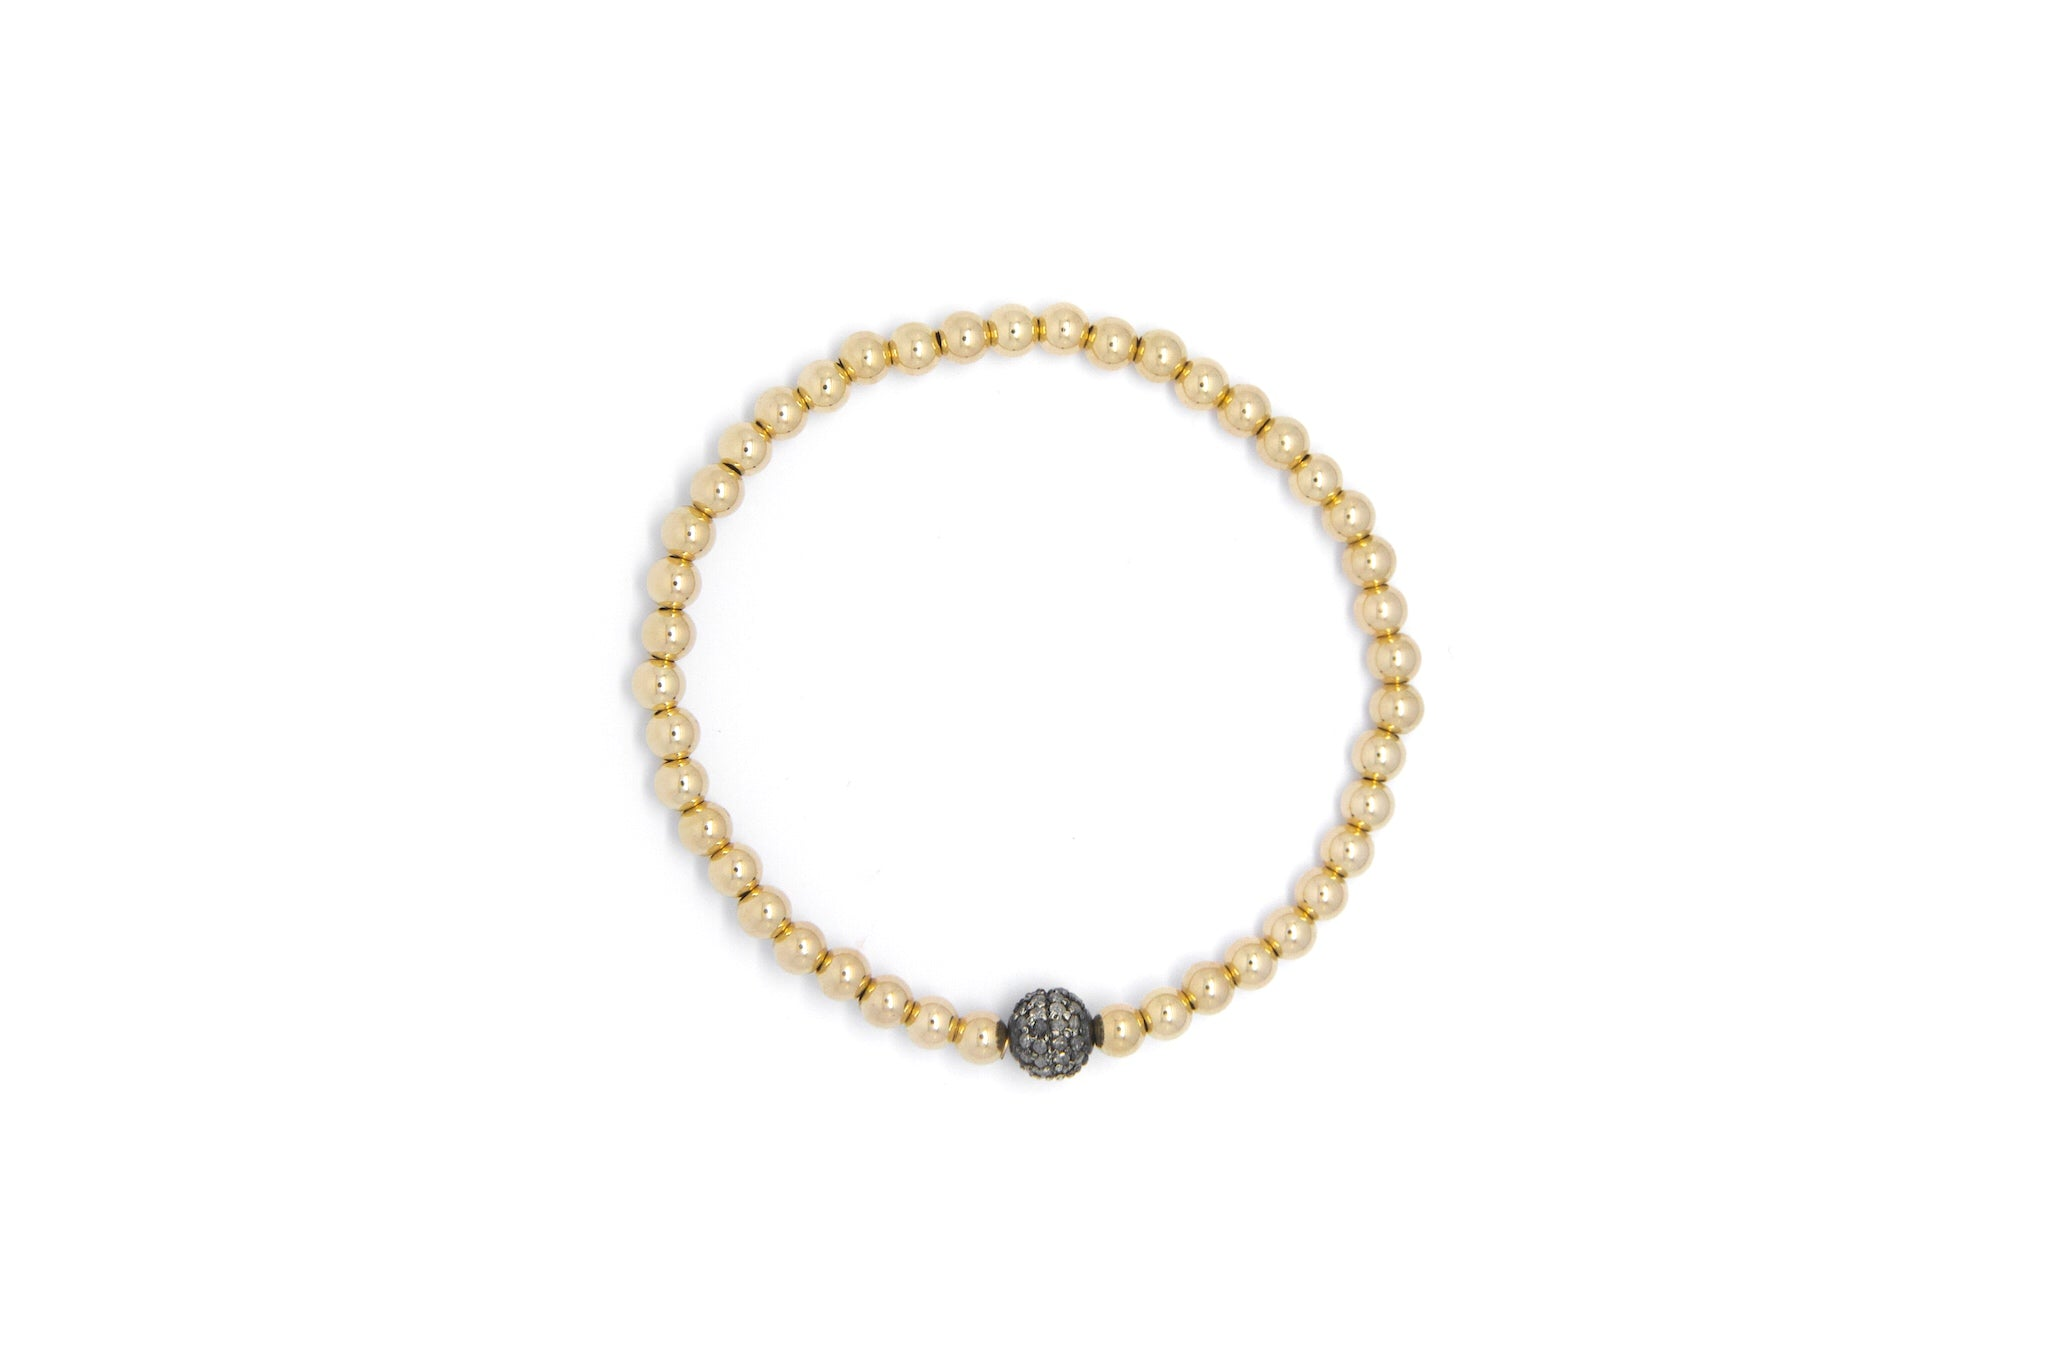 Small Gold Bracelet Diamond Ball Arm Candy By Kelly